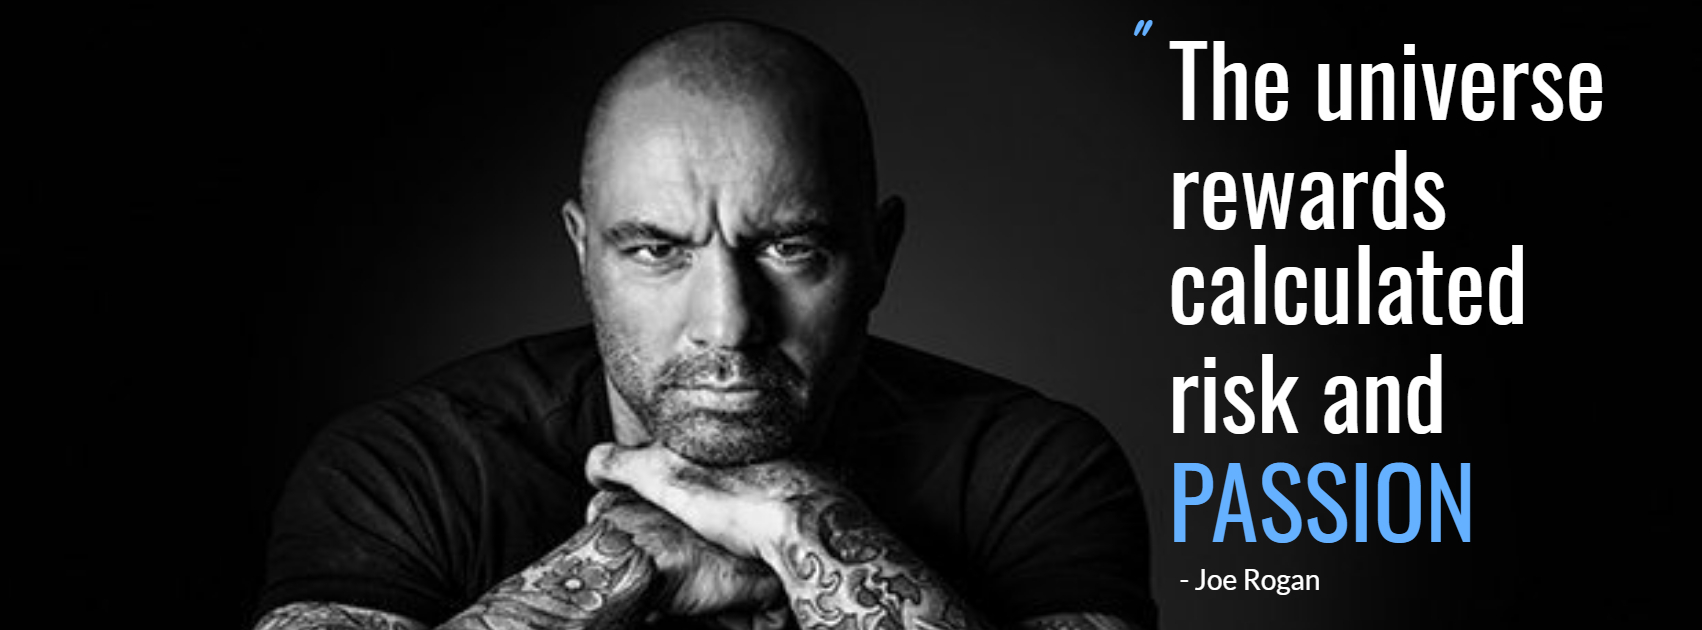 top-10-inspirational-quotes-2018-joe-rogan